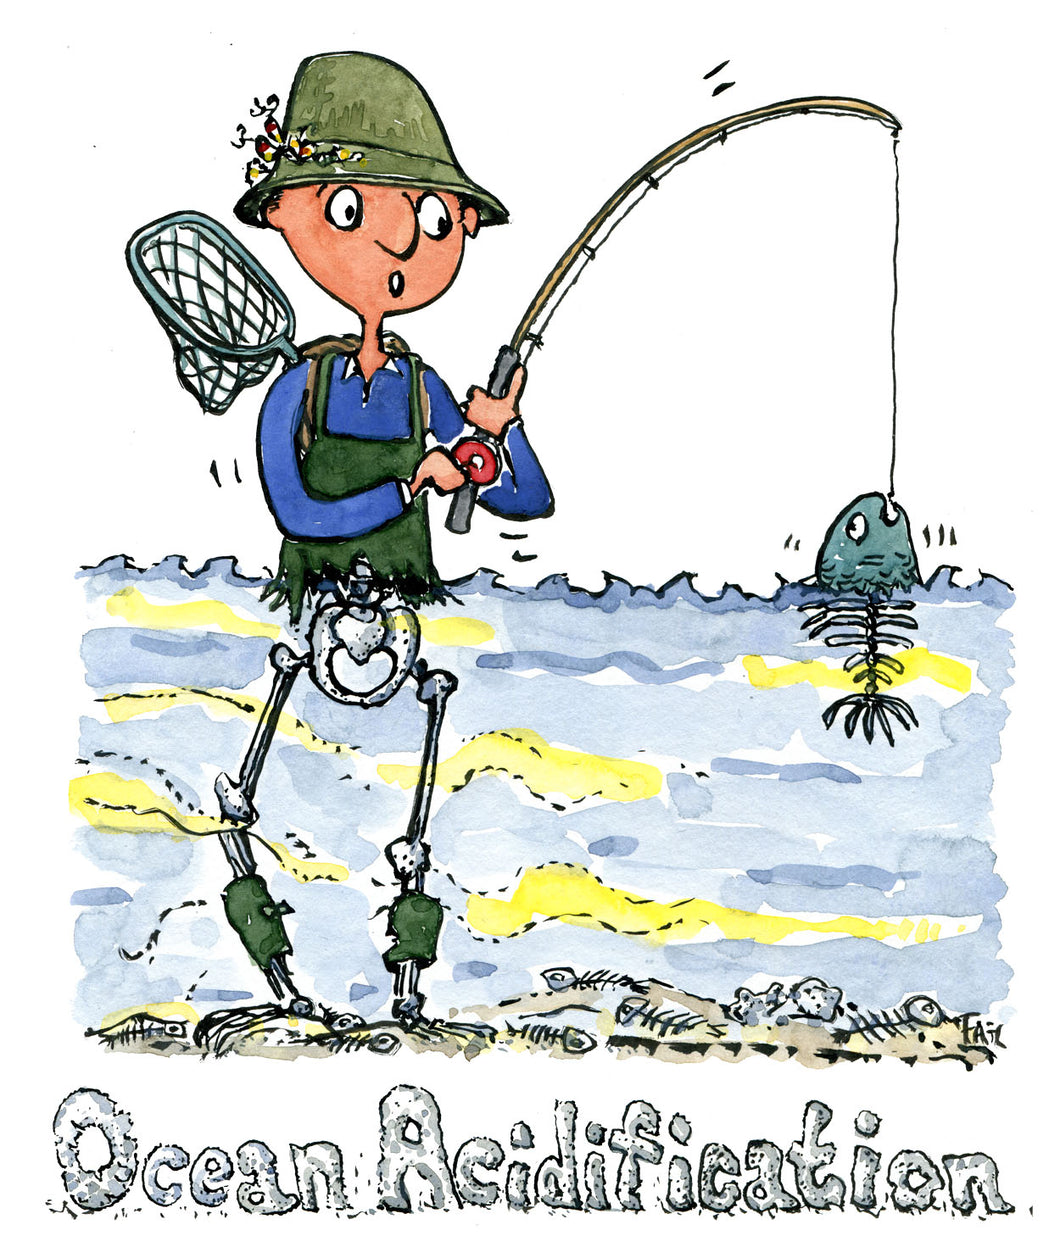 fisherman fishing in ocean where fish turns to skeletons, illustration by Frits Ahlefeldt